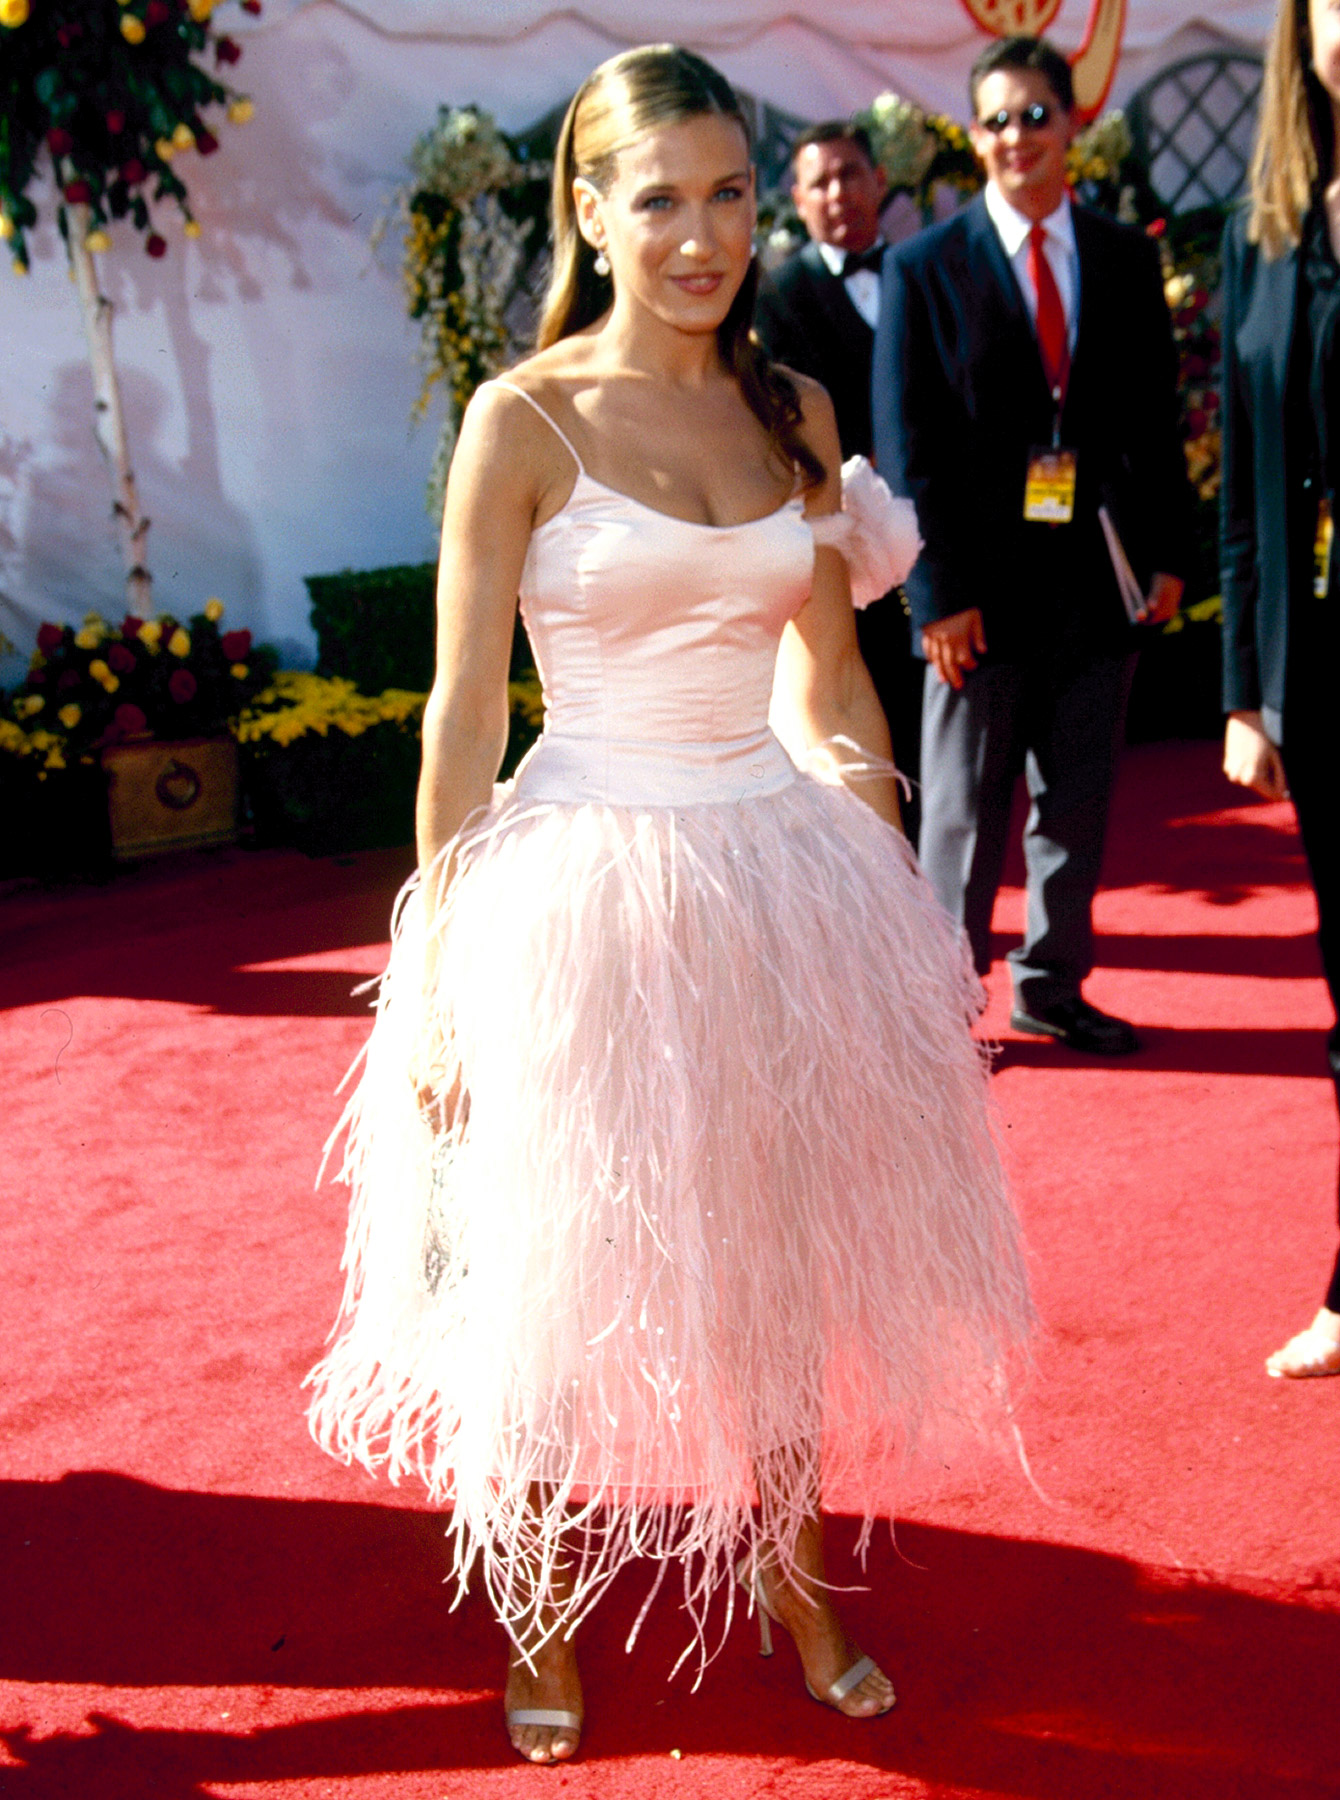 Playing off her her blush-colored ballerina skirt from the opening credits of her hit HBO show, Parker showed up to the 2000 Emmys (on Sept. 10) in a ballet-inspired Oscar de la Renta dress. She ended up losing out to Everybody Loves Raymond 's Patricia Heaton in the category of Outstanding Lead Actress, but no one forgot her red carpet look.